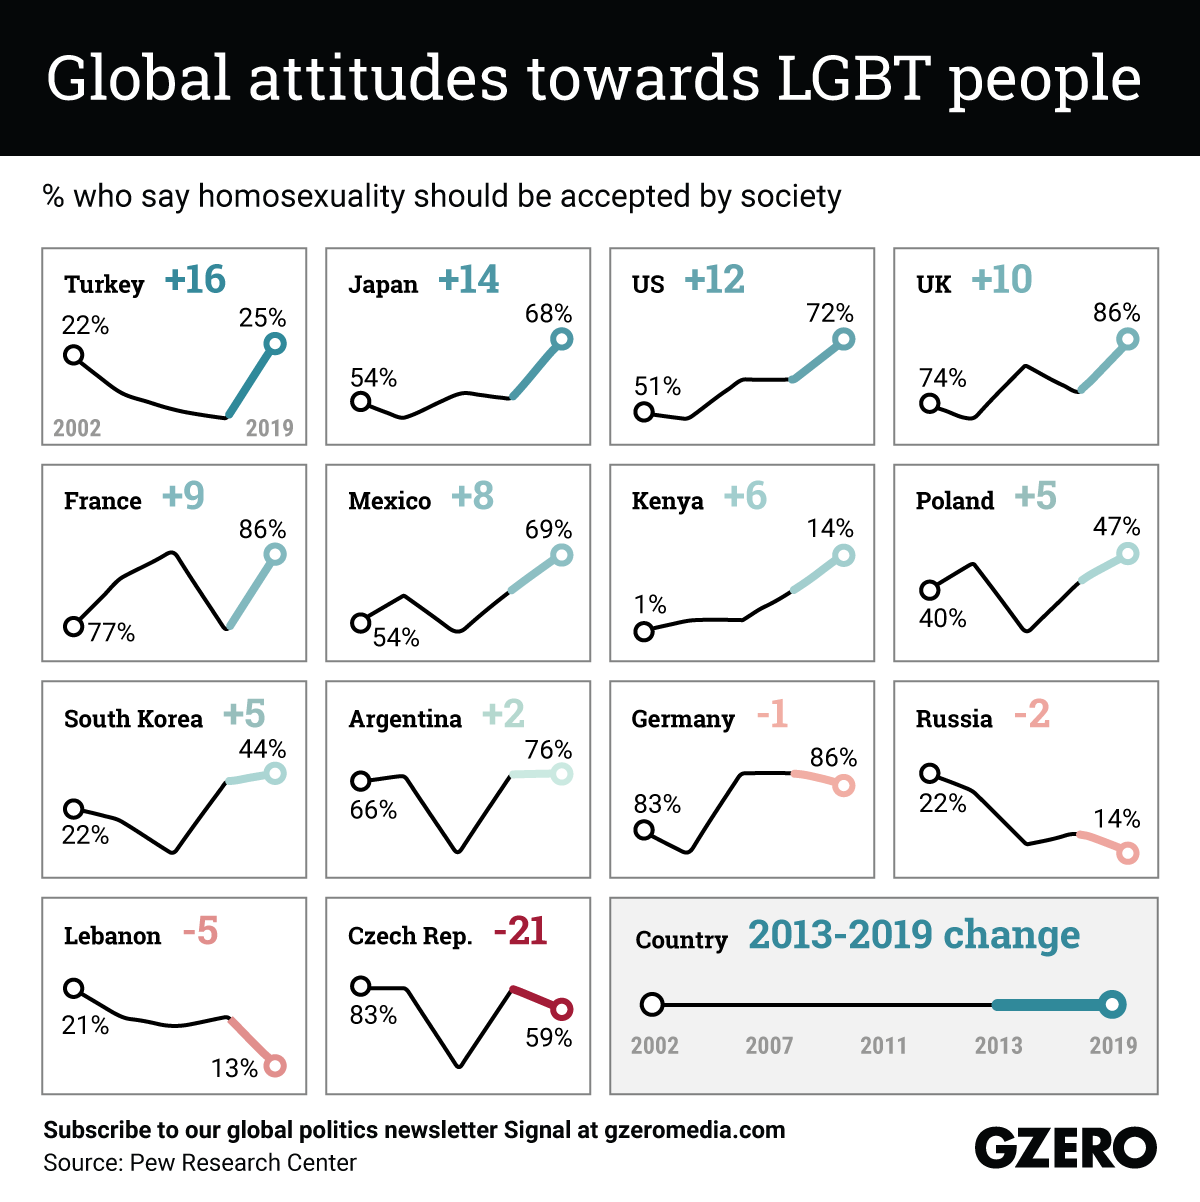 The Graphic Truth: Global attitudes towards LGBT people